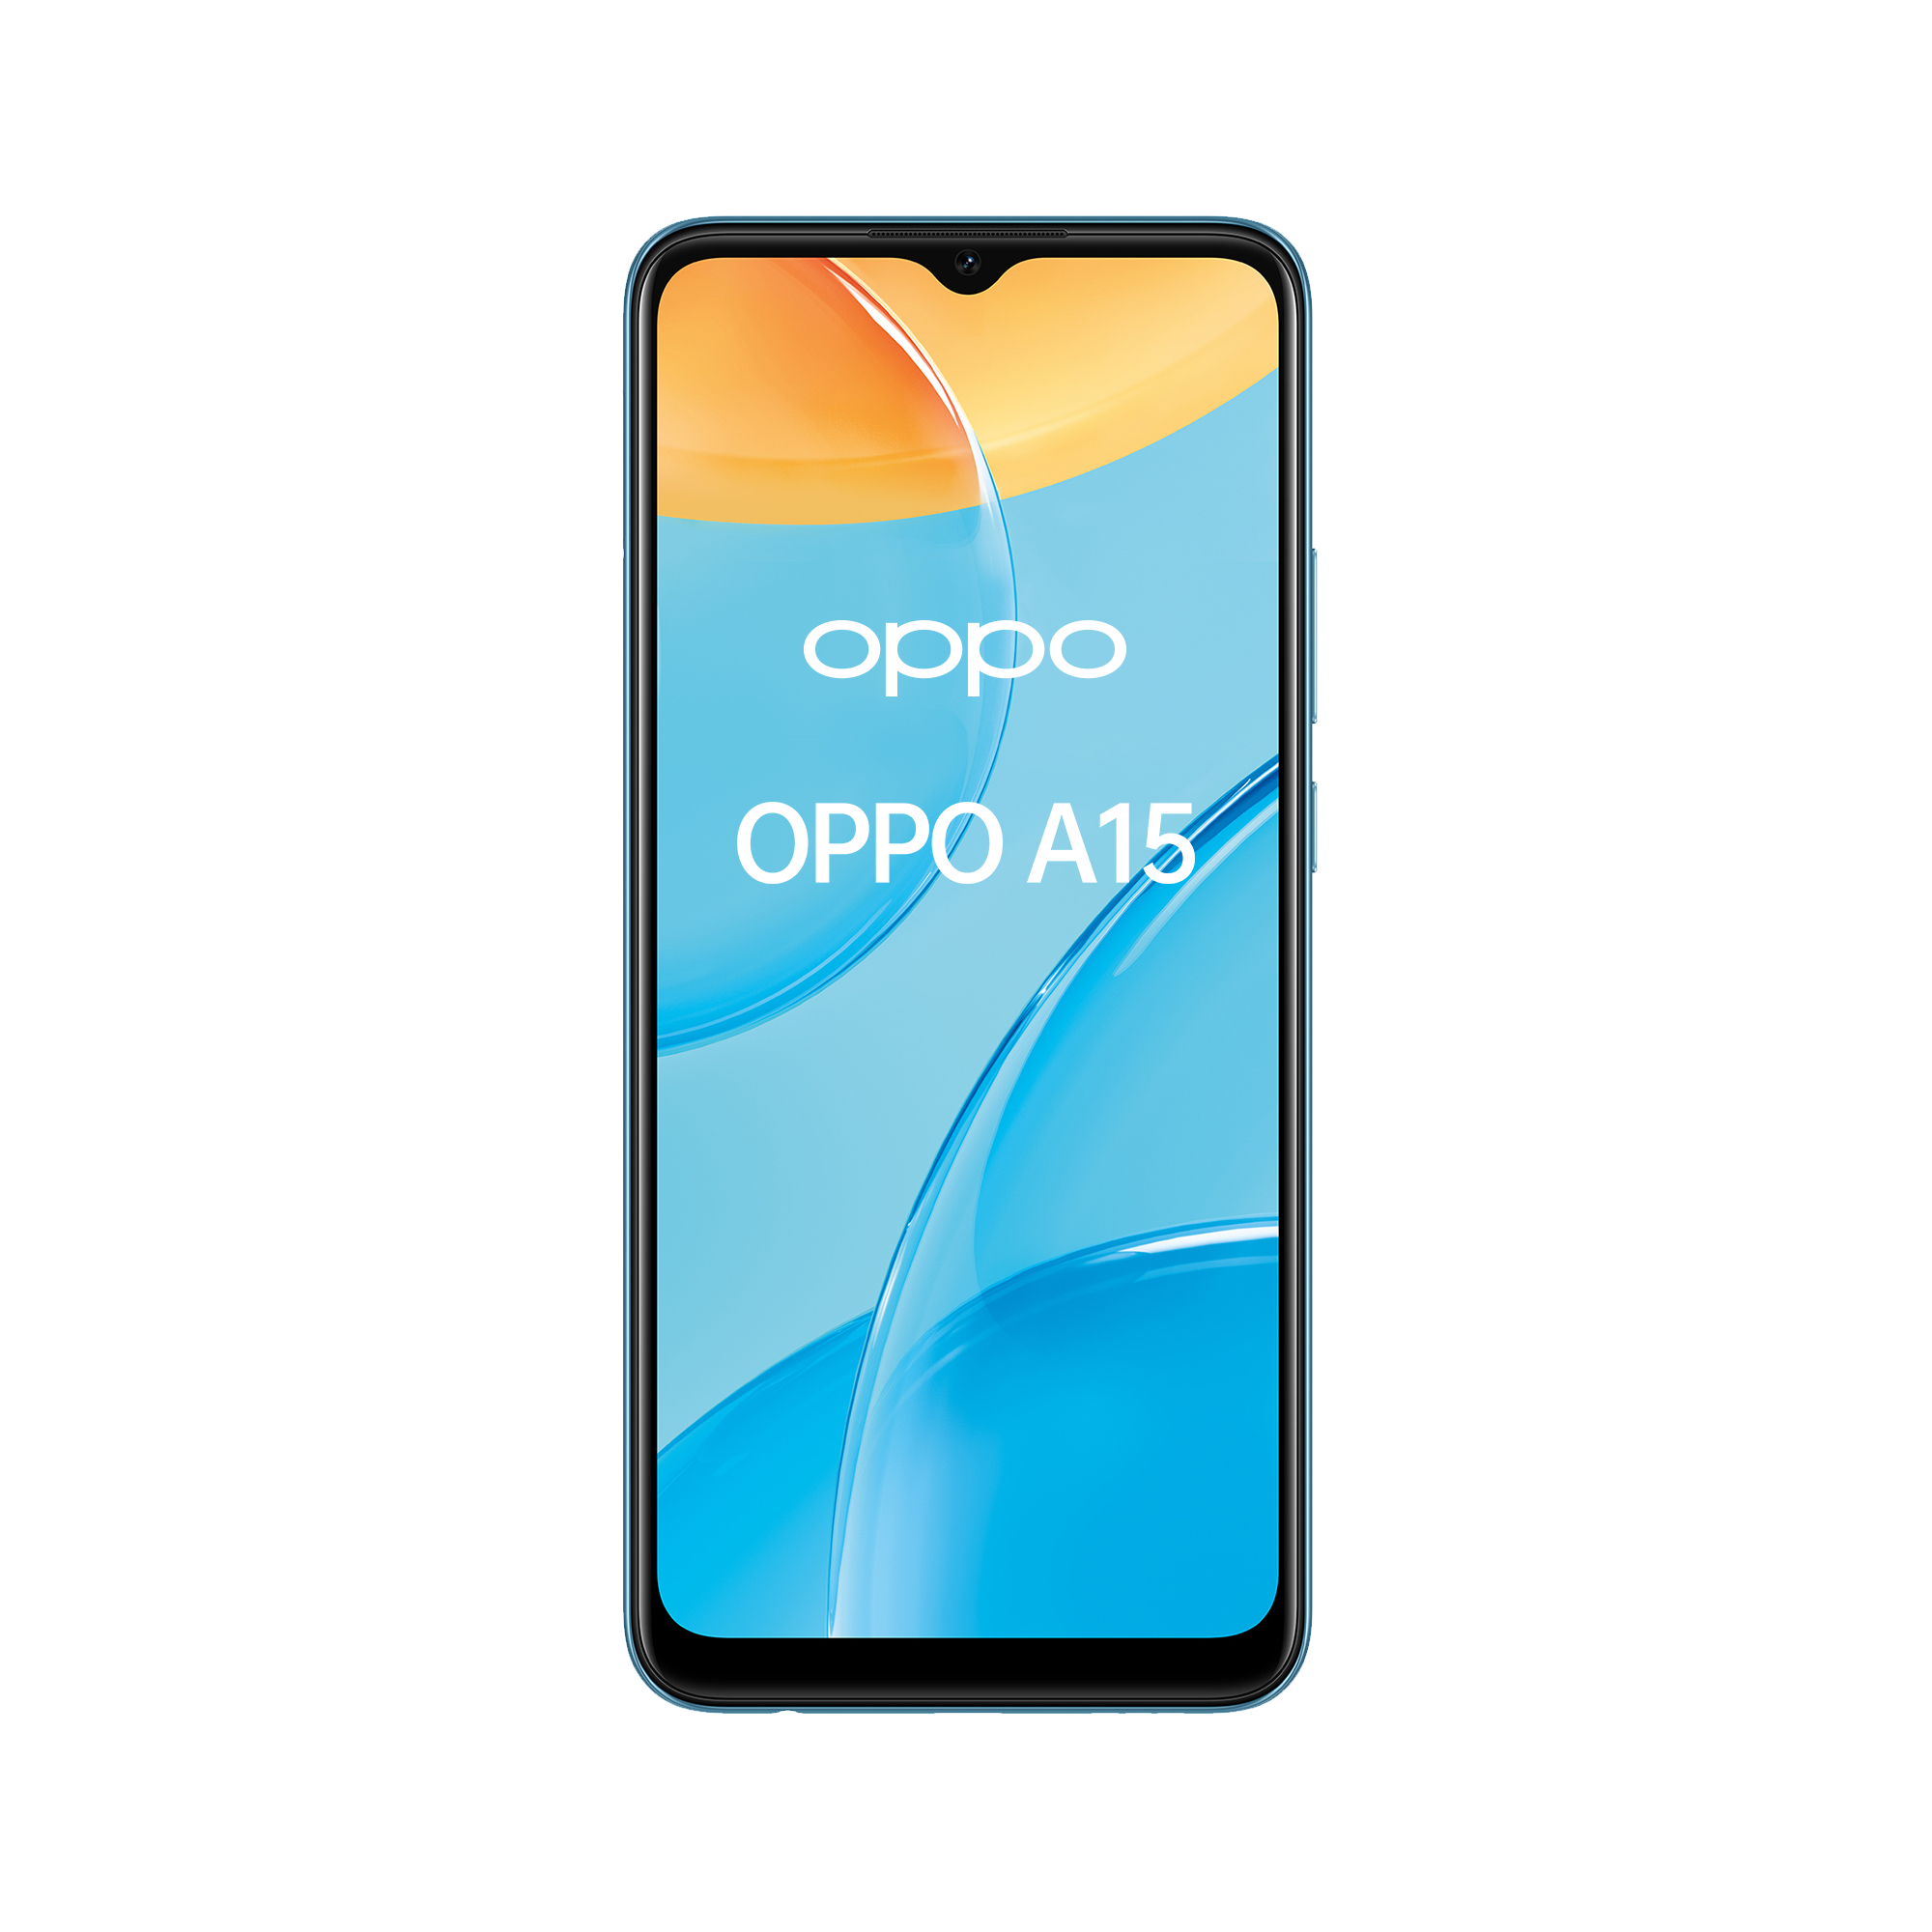 OPPO A15 Smartphone, 179g, Display 6.52